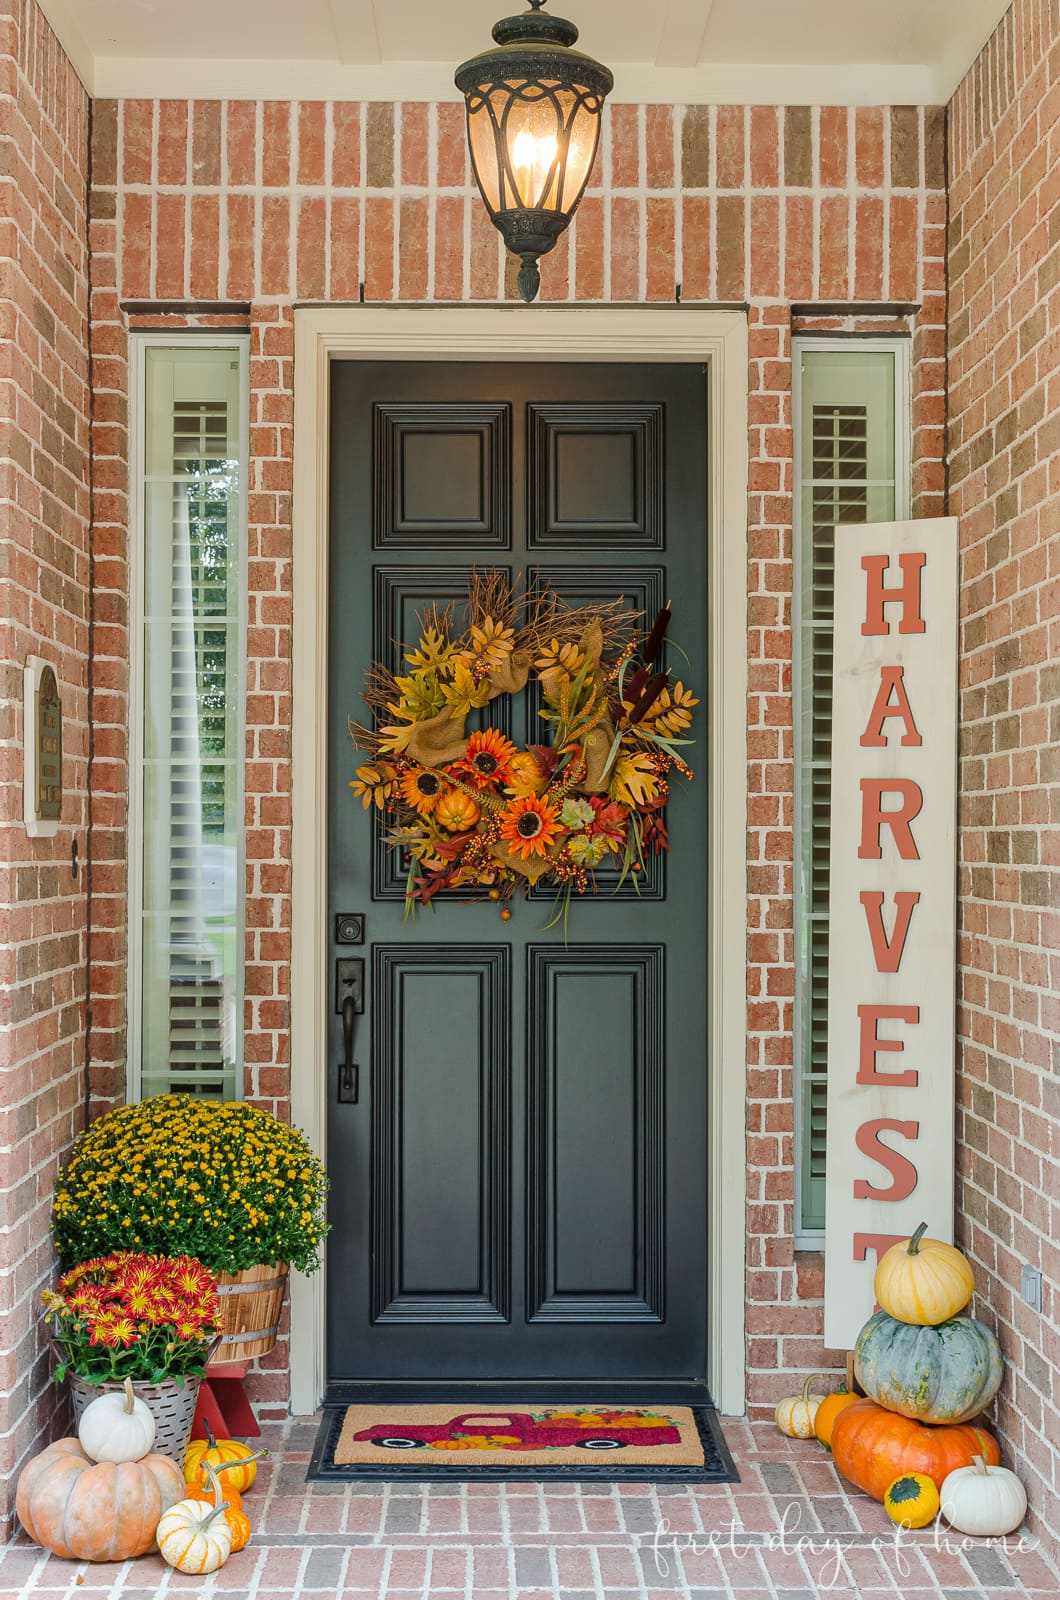 Front porch fall decorating ideas with grapevine wreath on black door, DIY wooden sign, pumpkins, mums and a fall mat